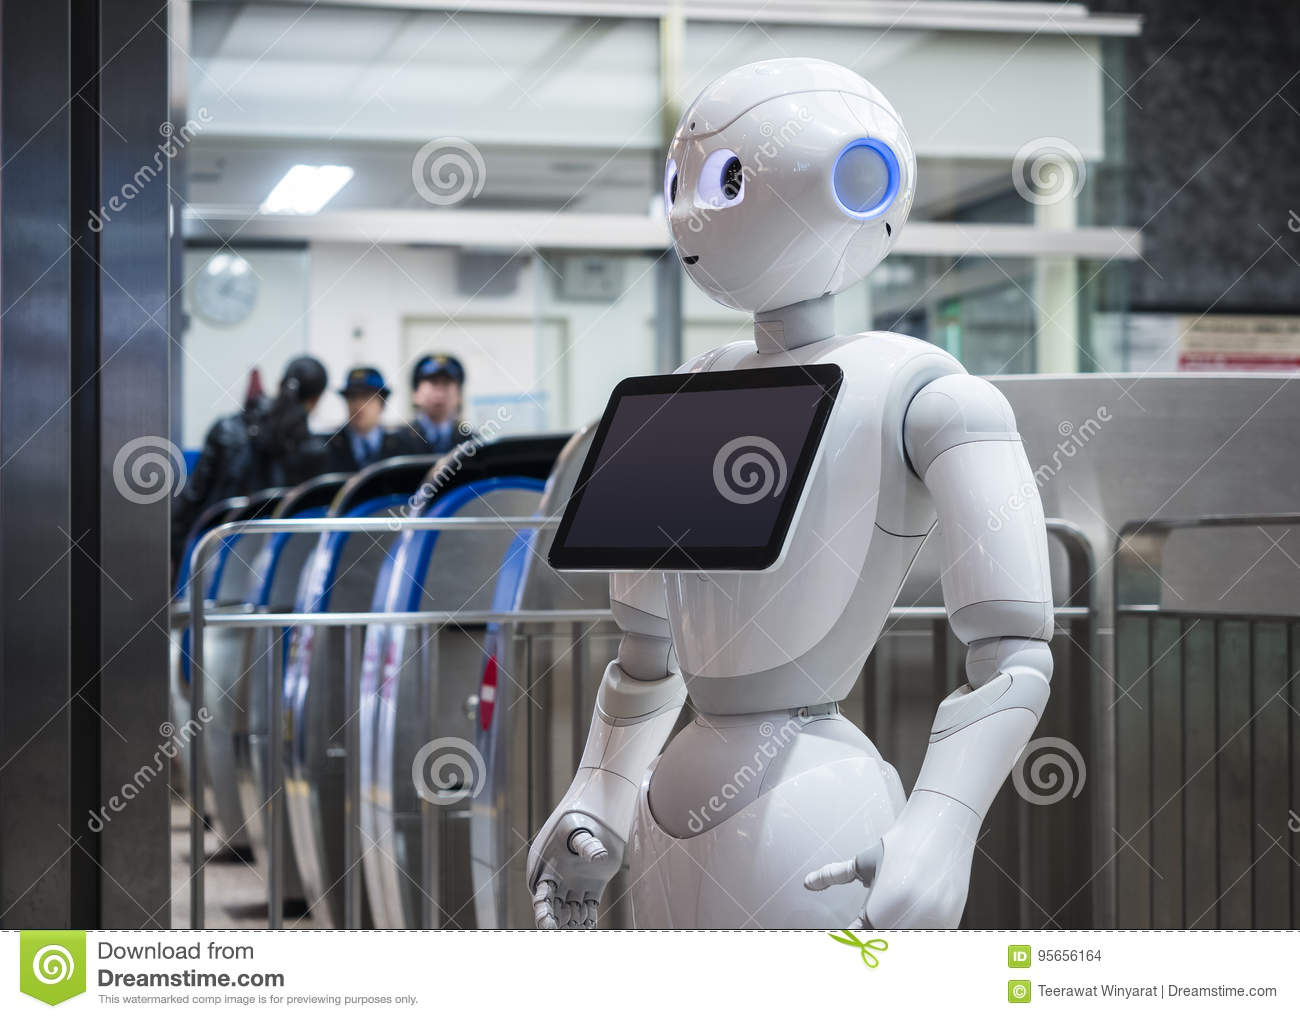 KANAZAWA, JAPAN - APR 11, 2017 : Pepper Robot Assistant with Inf